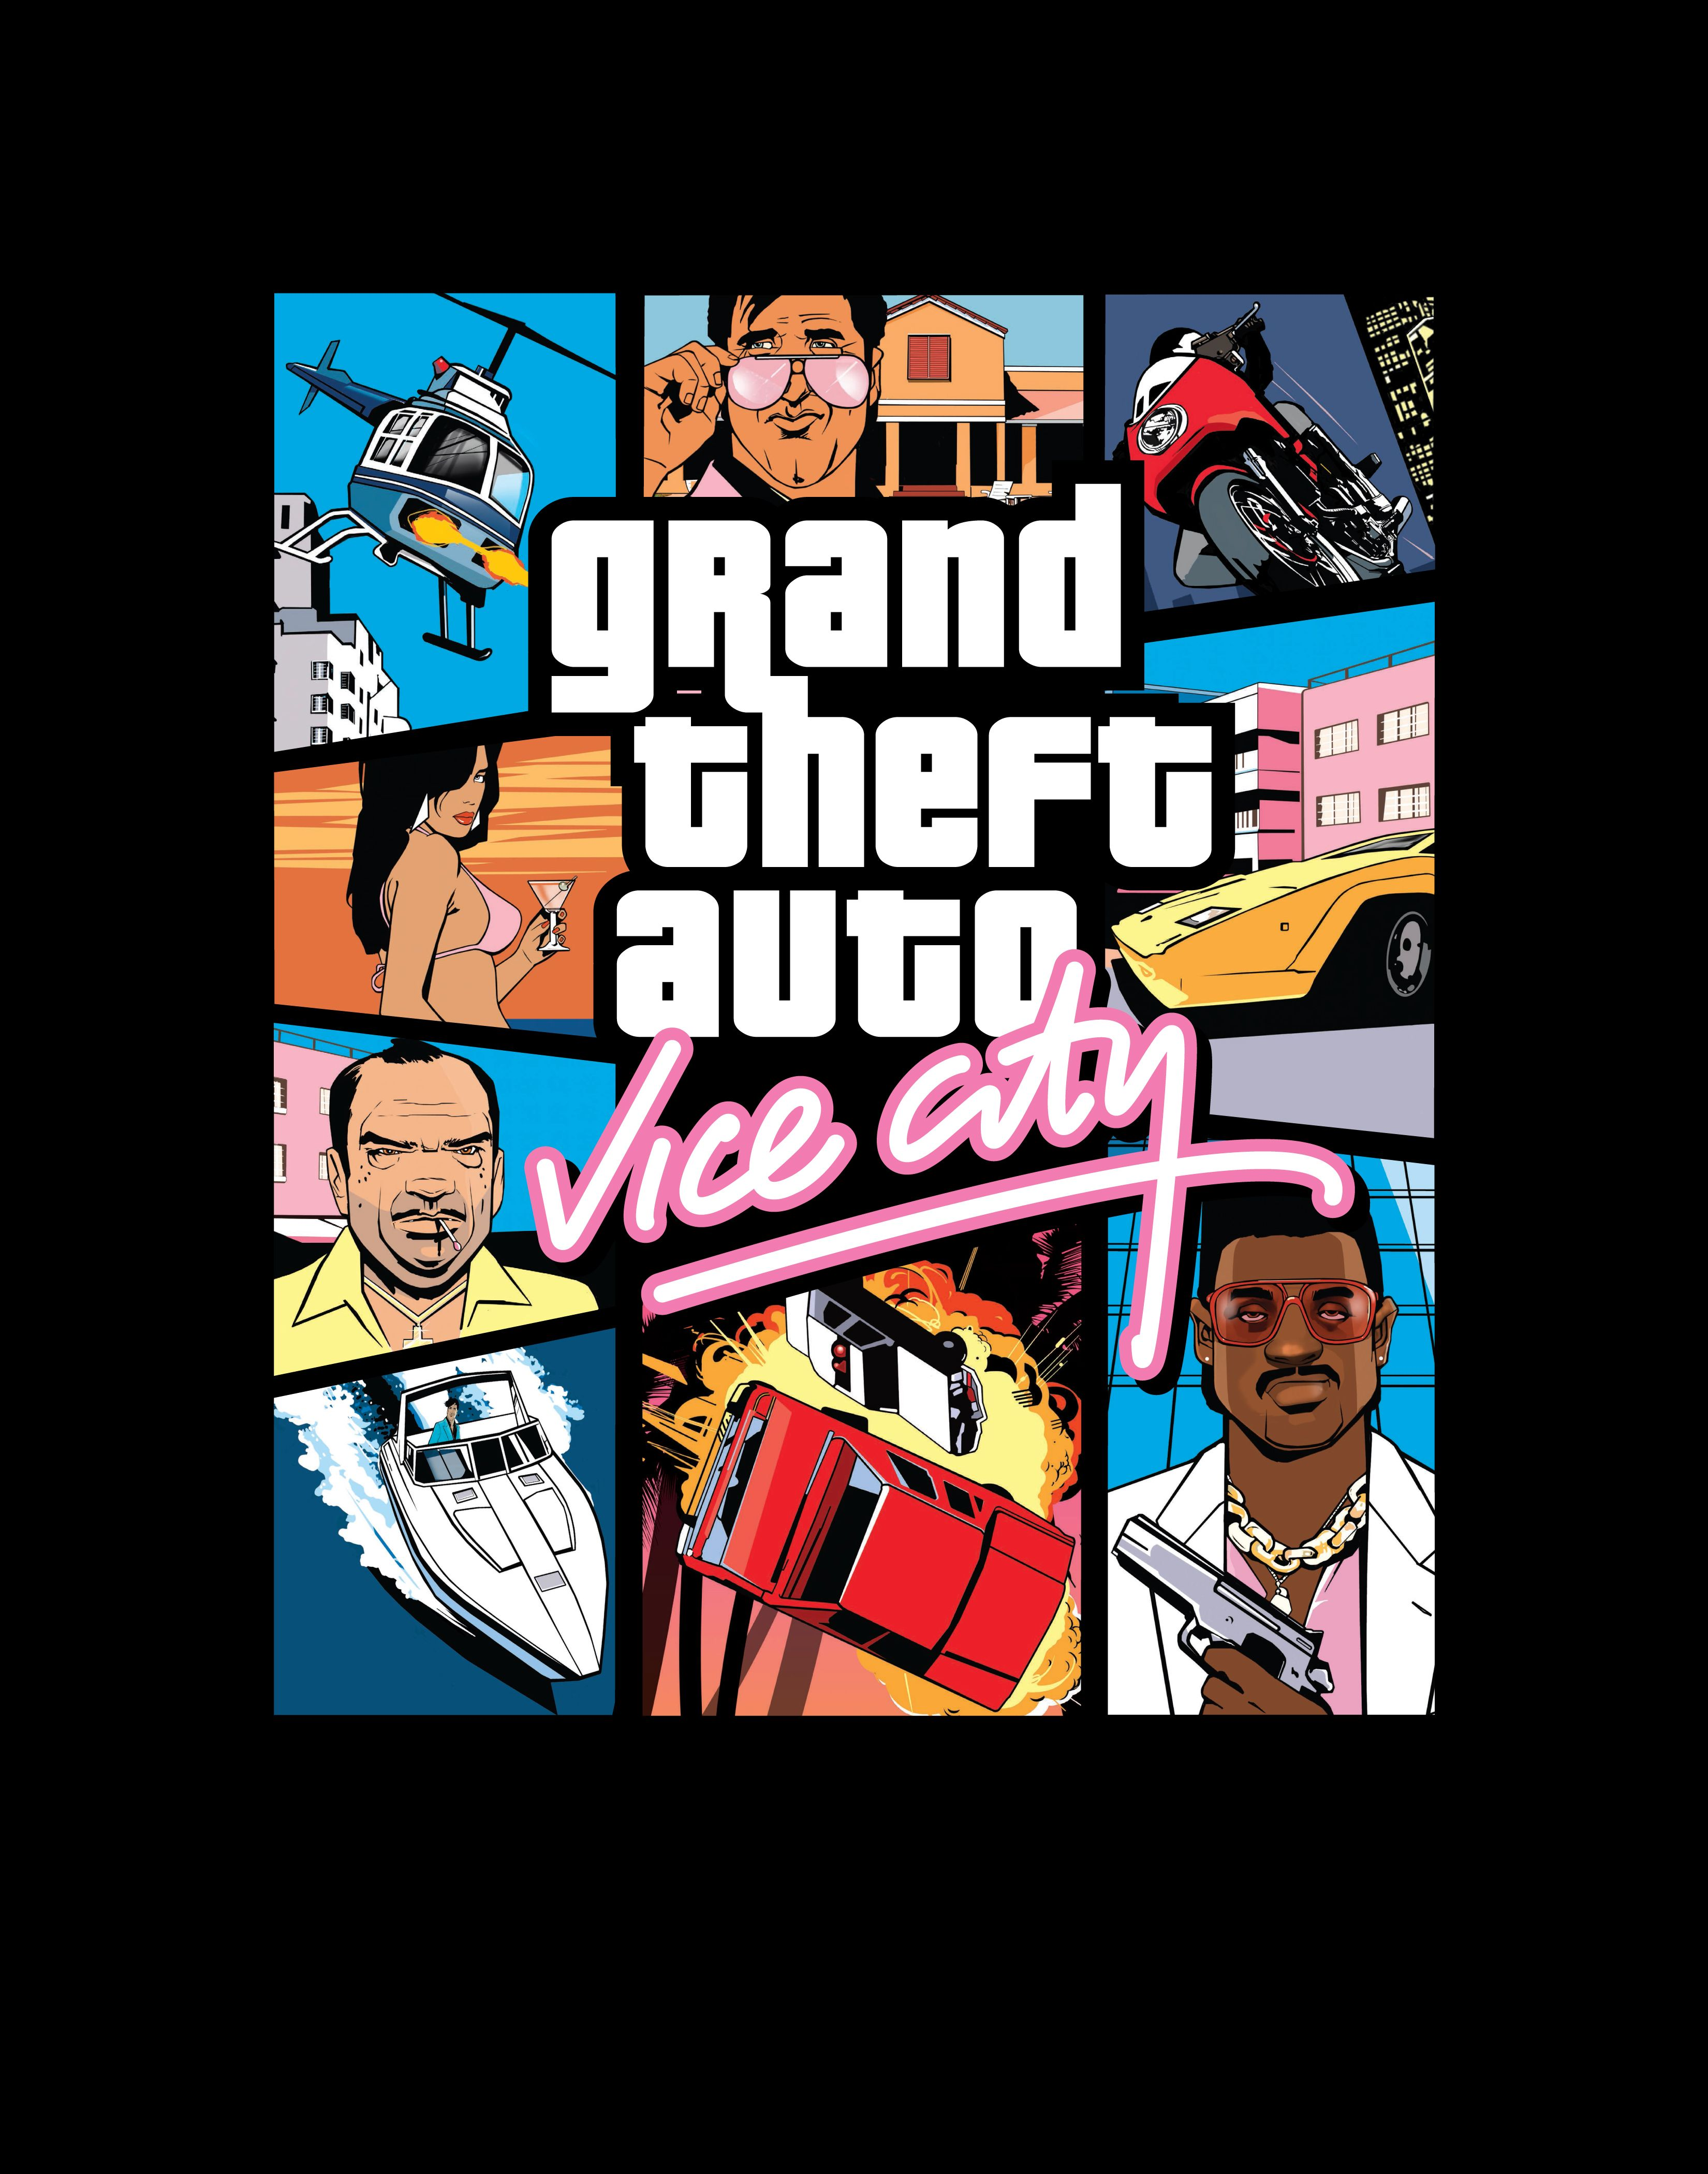 Gta Vice City Front Of Box Cover Stephen Bliss 2002 Grand Theft Auto Theft City Artwork